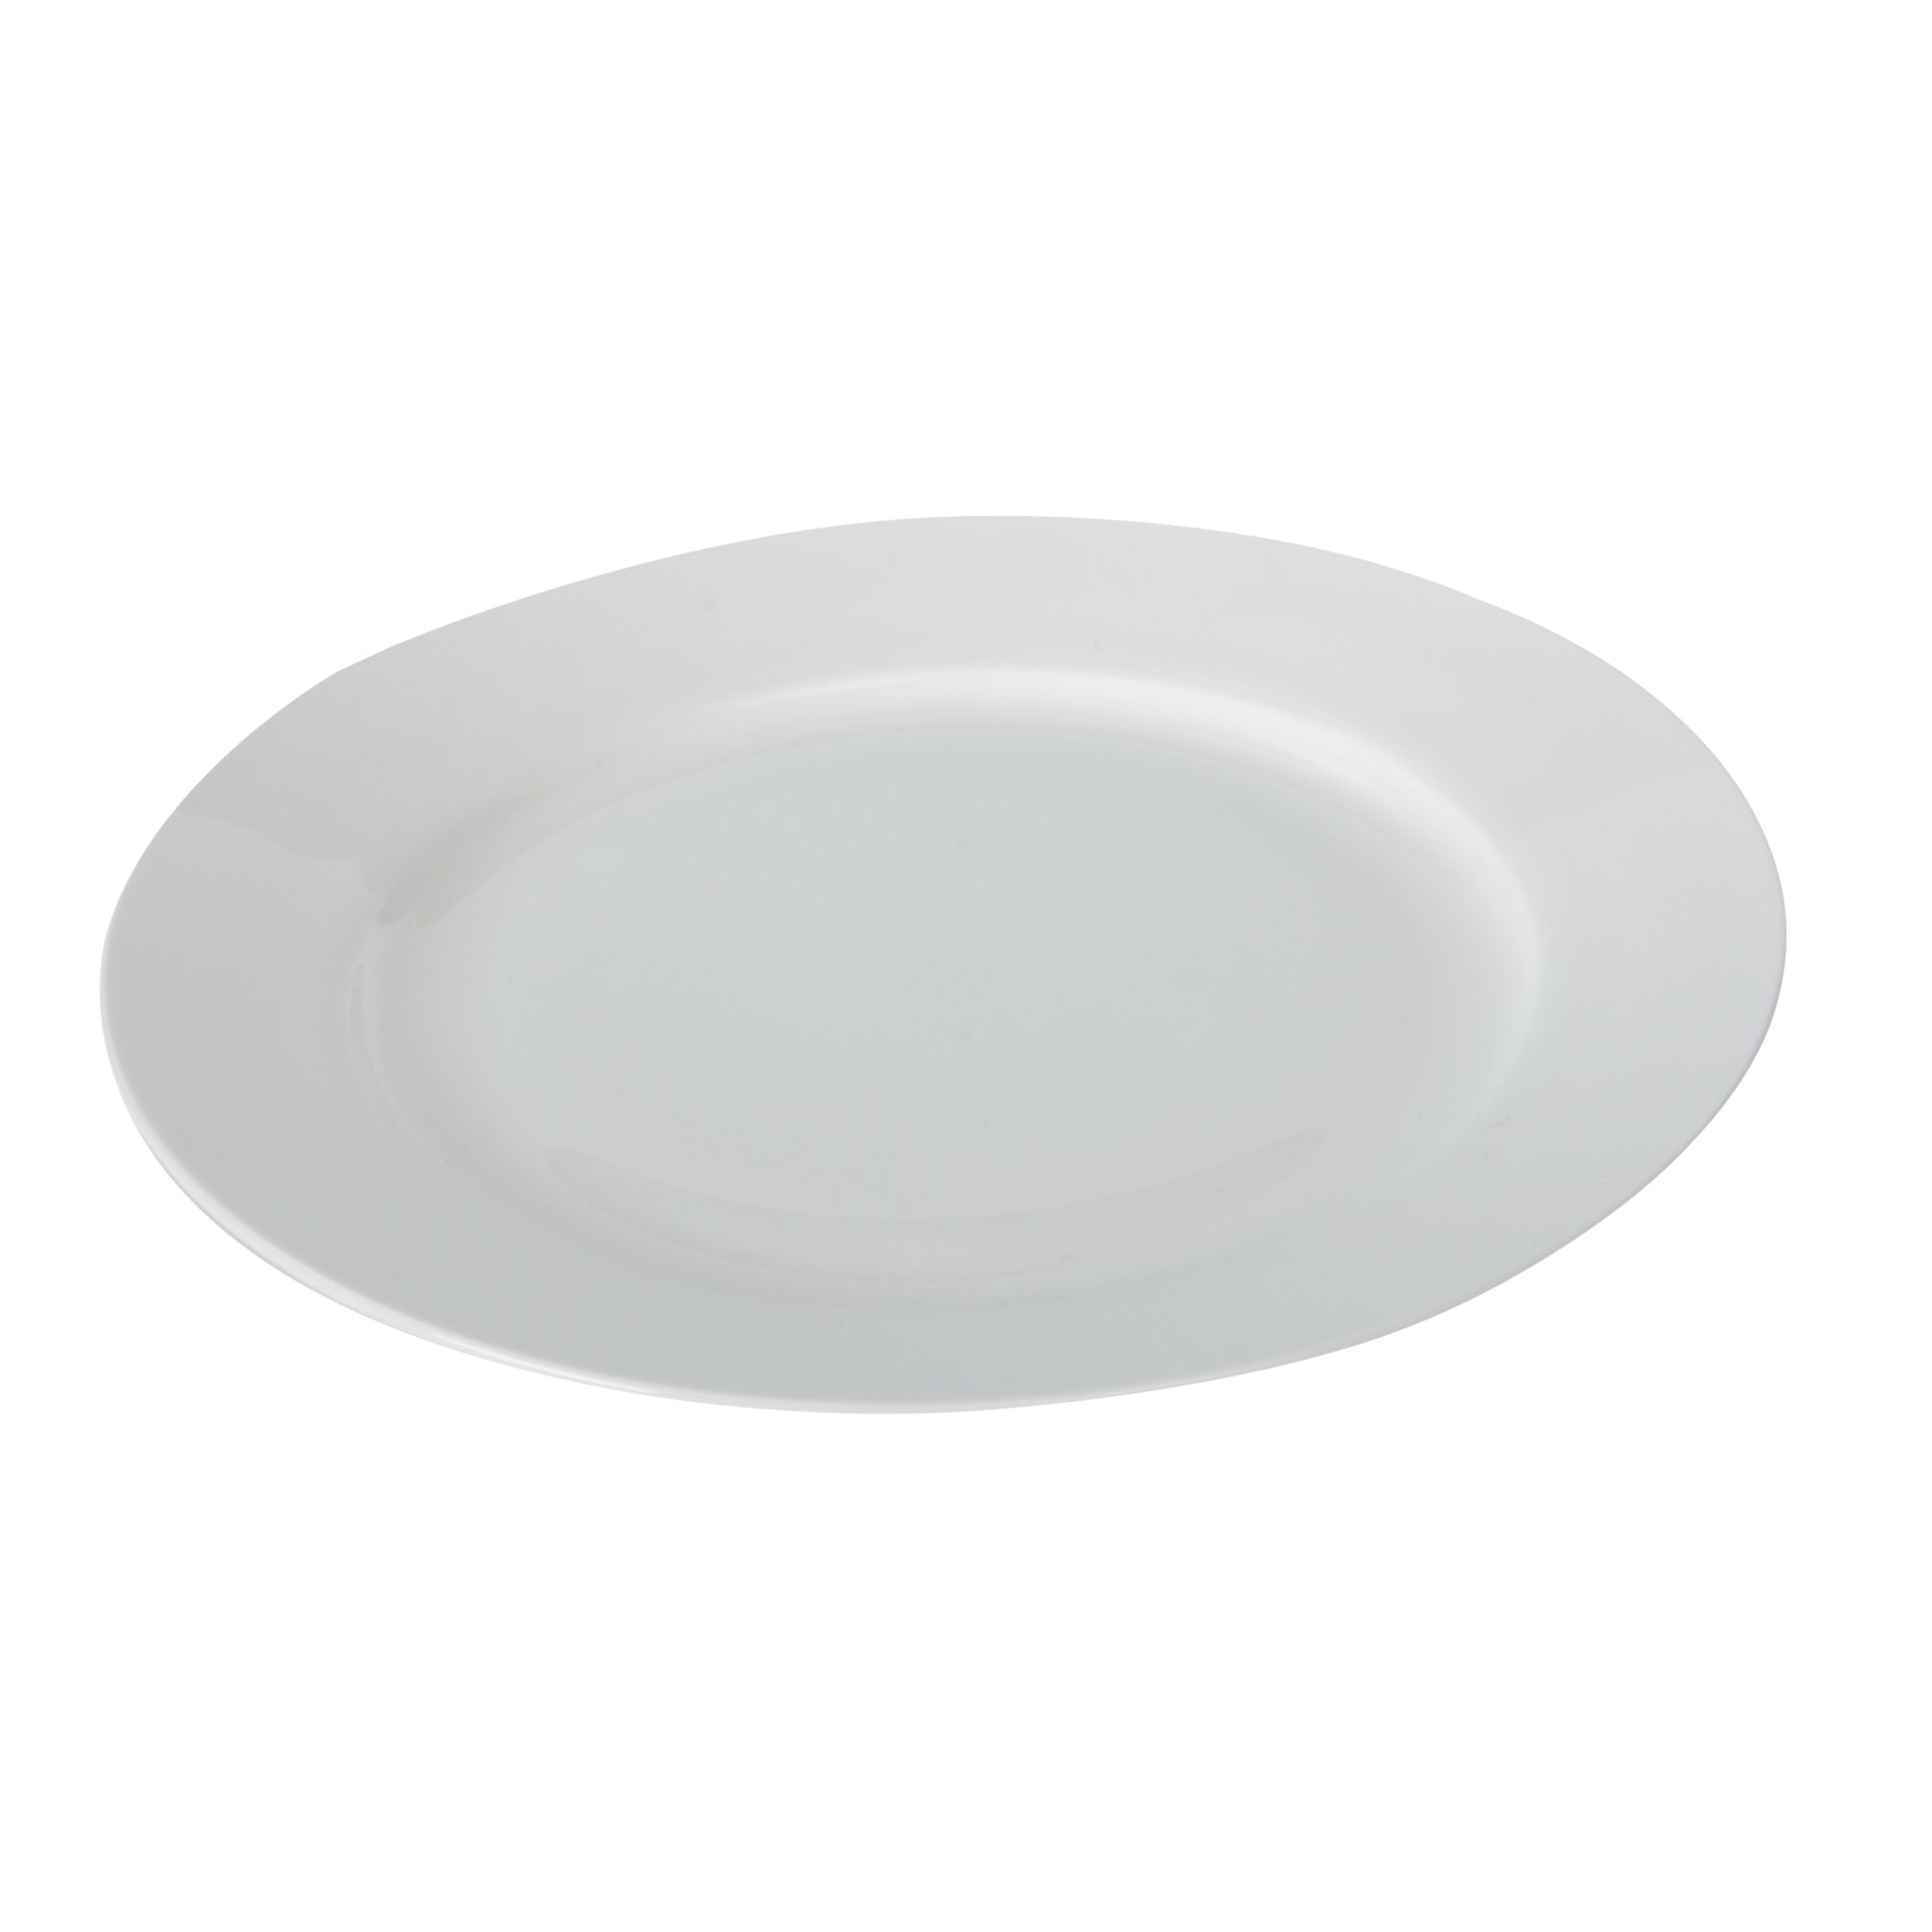 Eternal salad plate